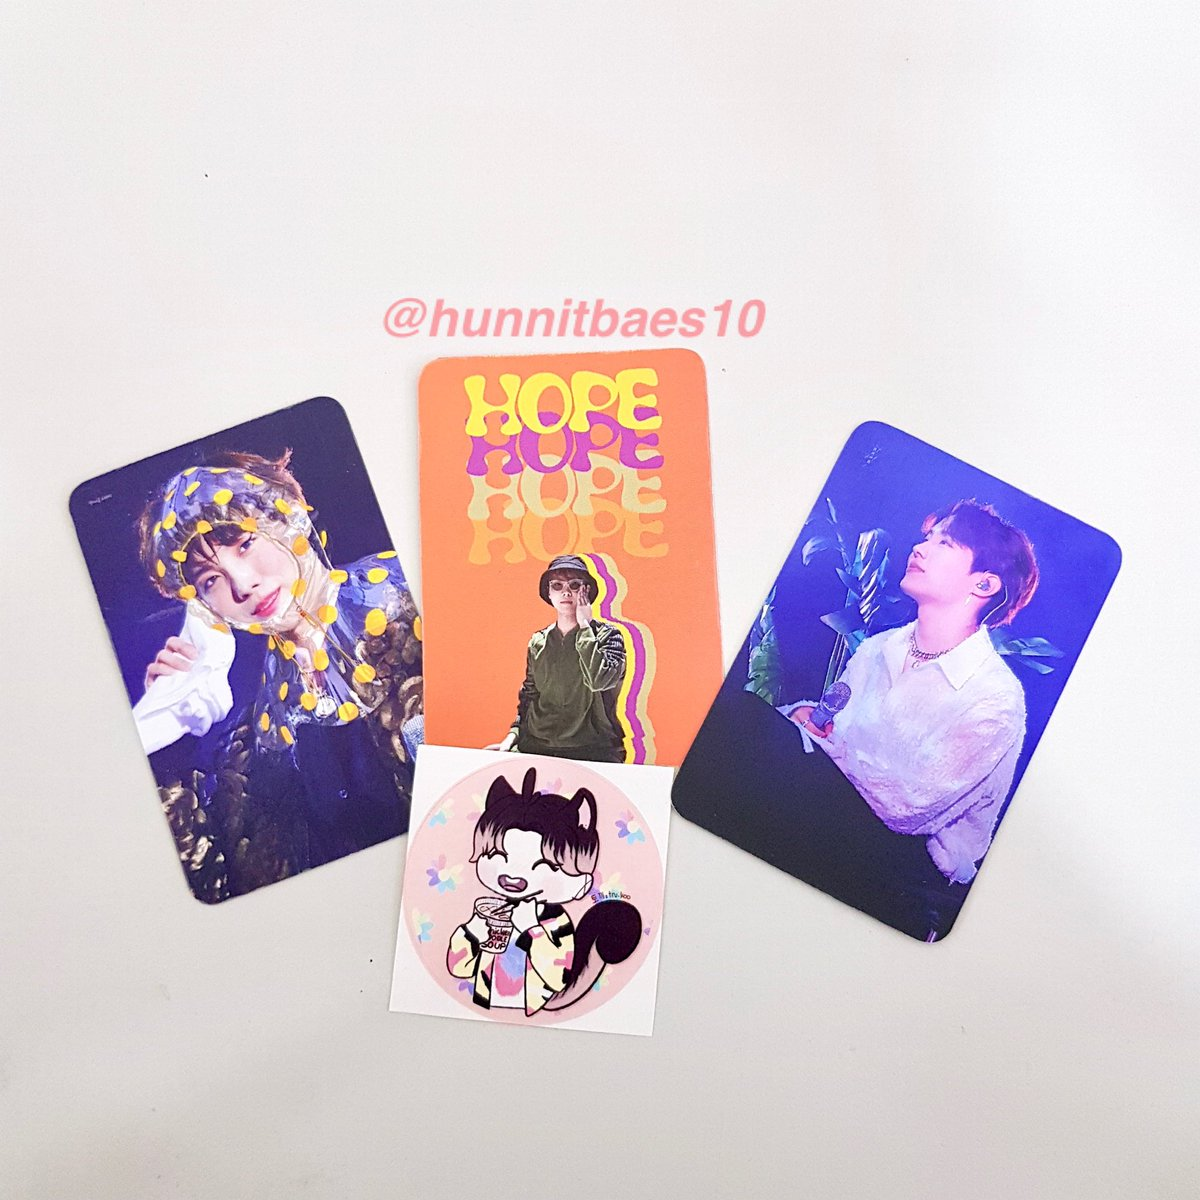 TADAAAAAAA! Here are our photocards and sticker!  We are collaborating with @softforyoon for the sticker, so thank you once again for making it happen Amy! Lots of love from  <br>http://pic.twitter.com/9NoOVqMtzb